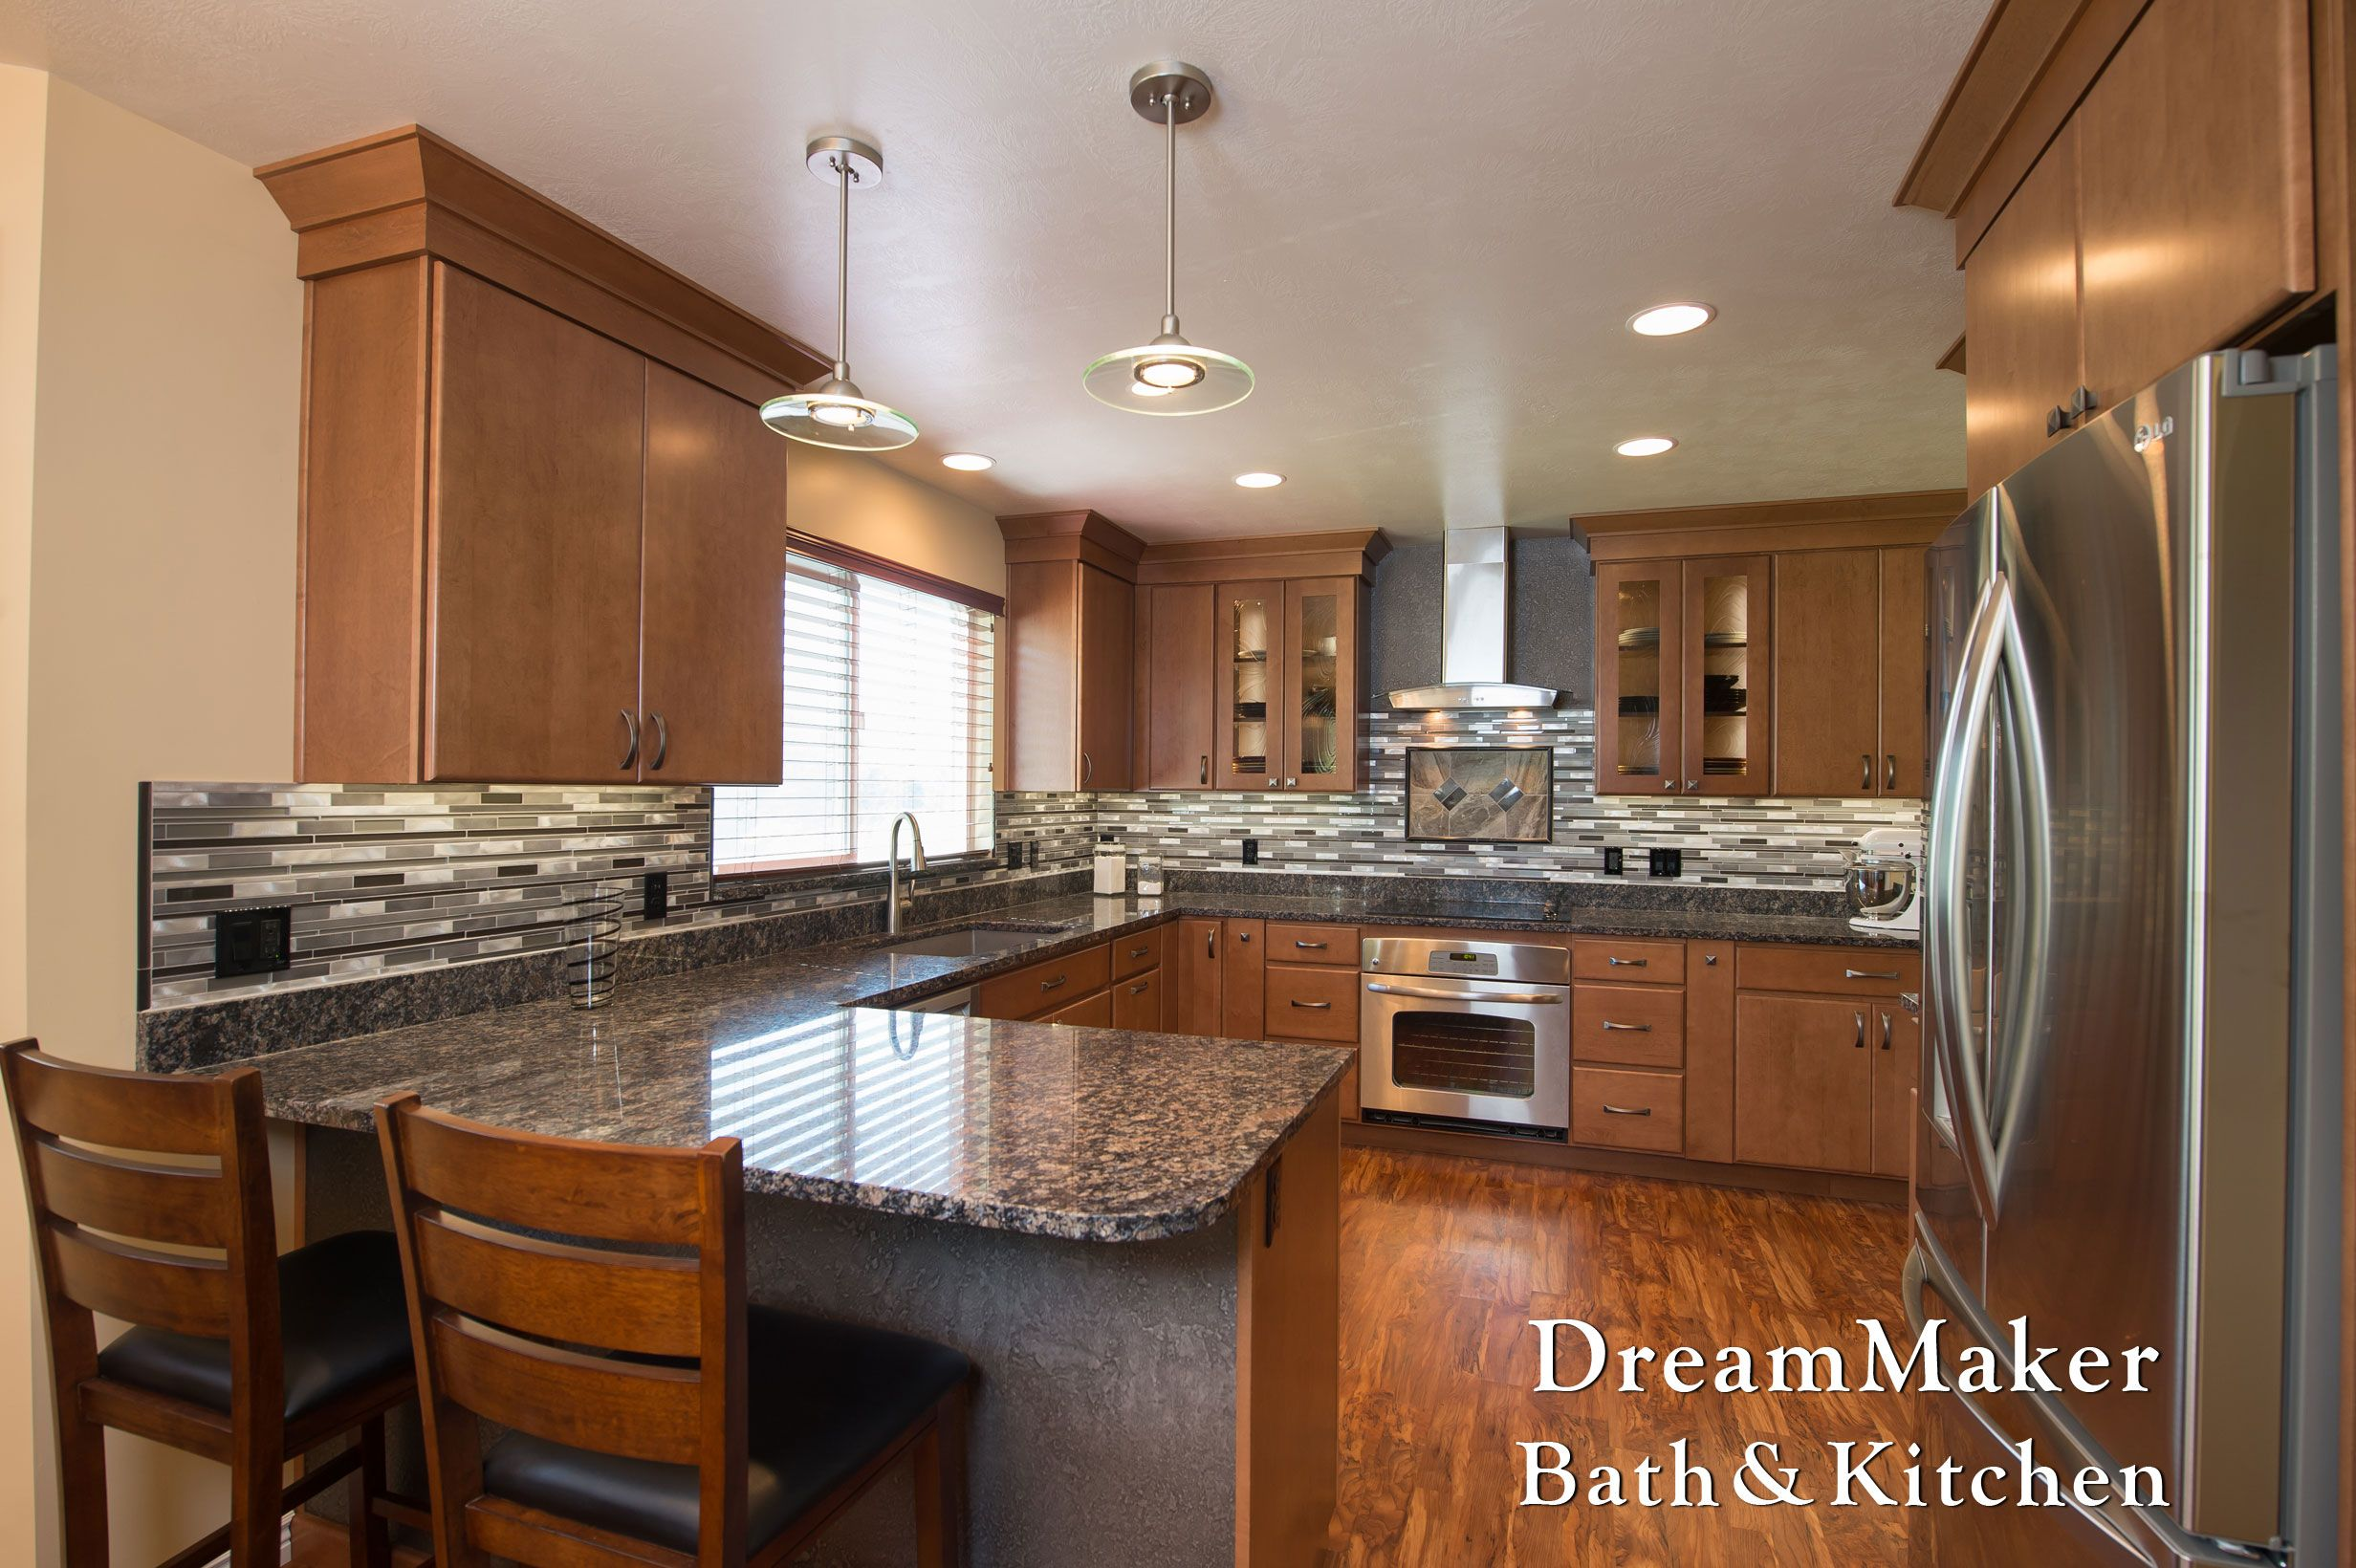 This Awesome Back Splash Ties In Well With The Chrome Appliances.  Photograph By Andrea Hanks Photography.